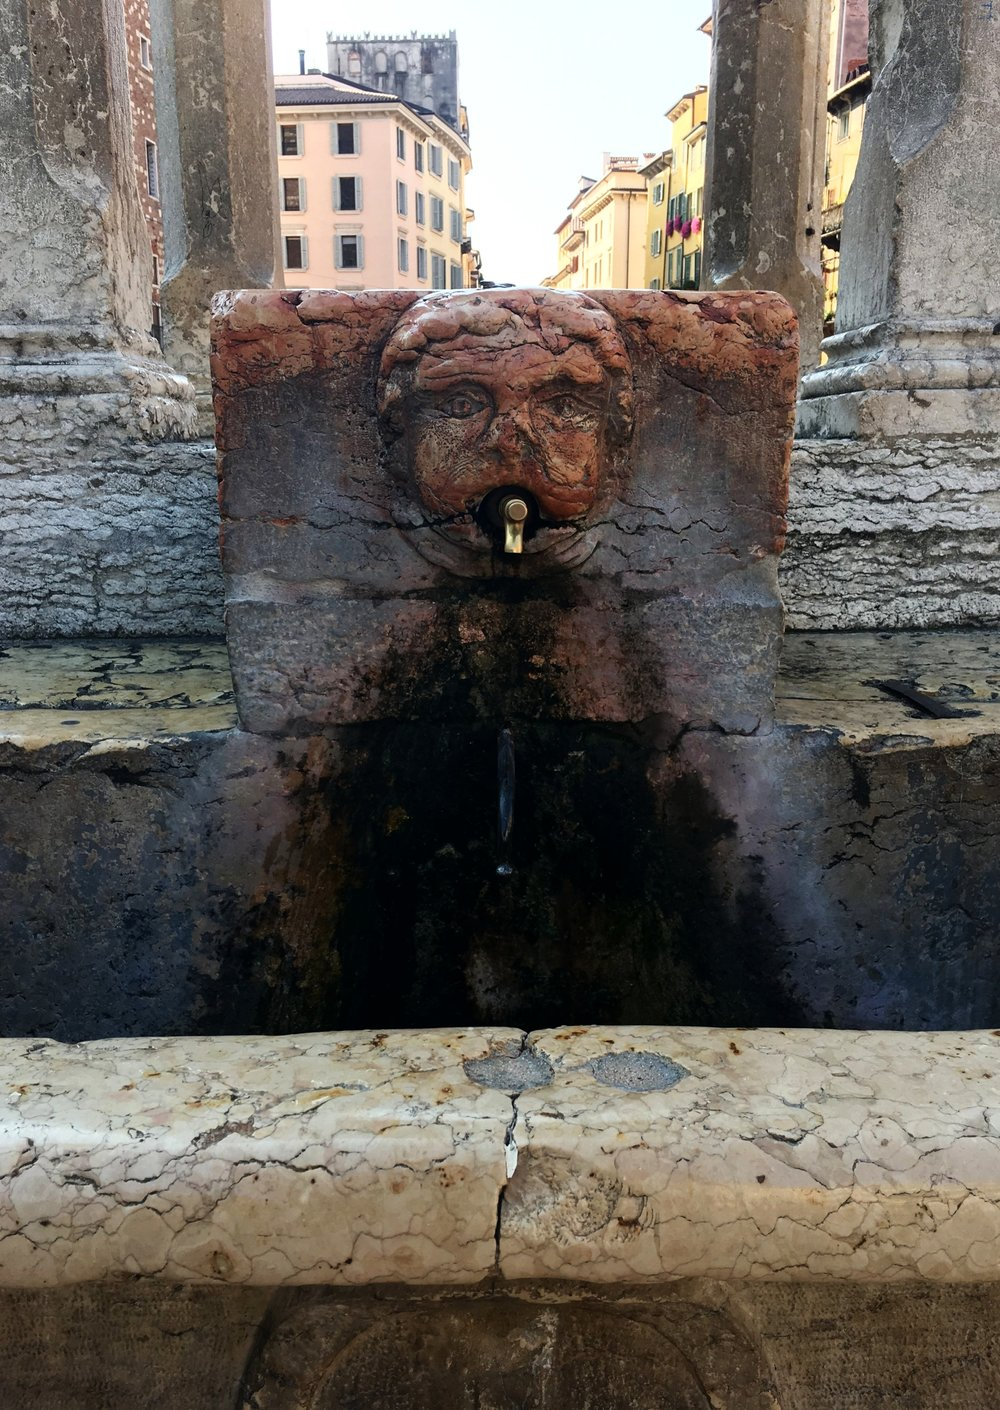 Fontanelle - Fontanelle are public water fountains with safe drinking water. They're in every Italian city I've visited, although some cities have more than others. They are ideal for refilling your water bottle and a map for any city can be found here.